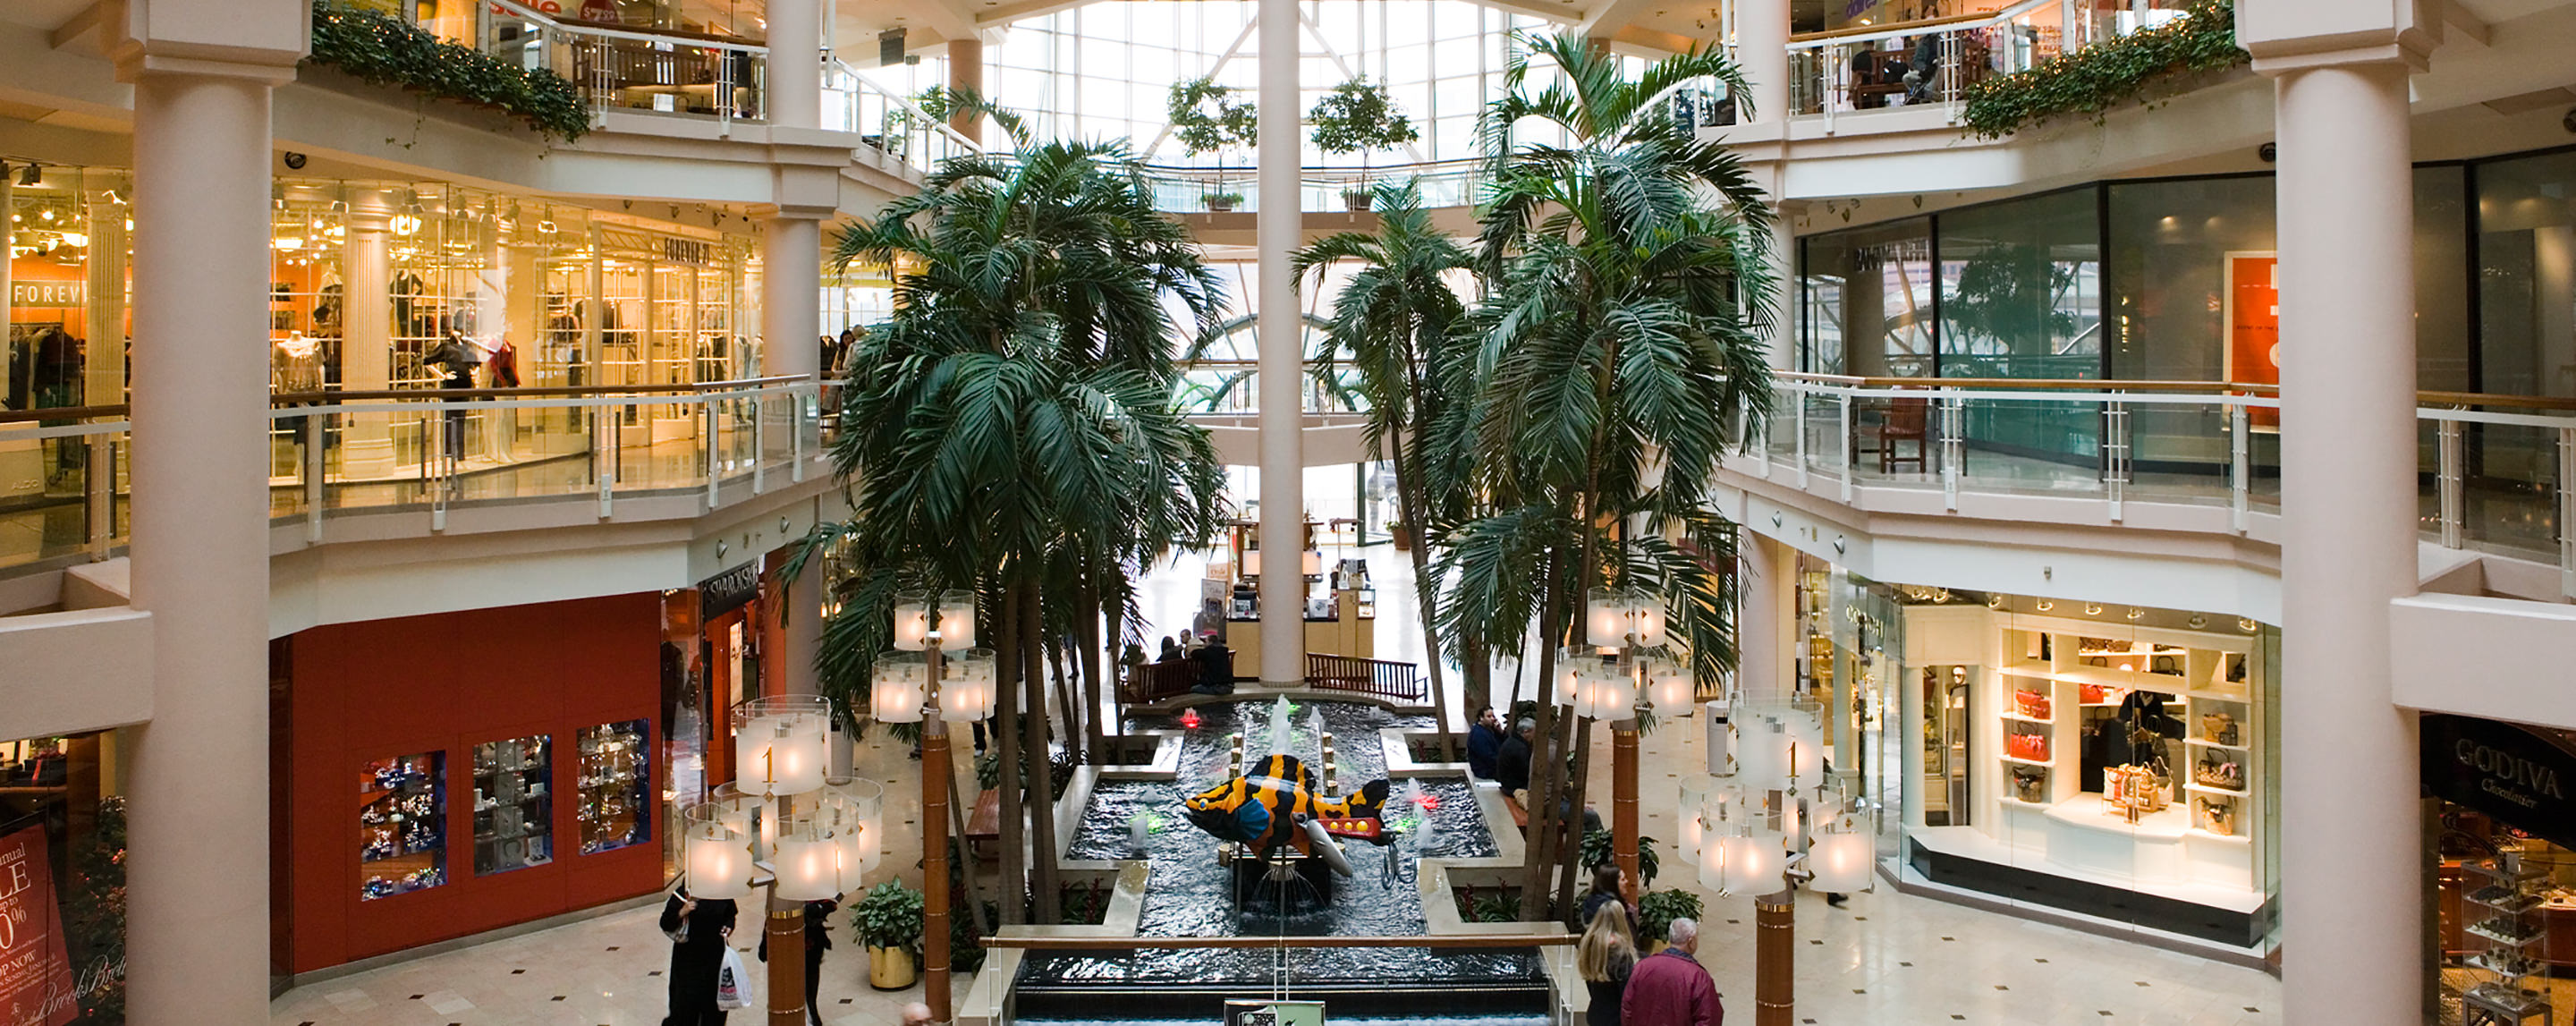 The atrium of a multi-story mall. An indoor fountain is lined with rows of palm trees.